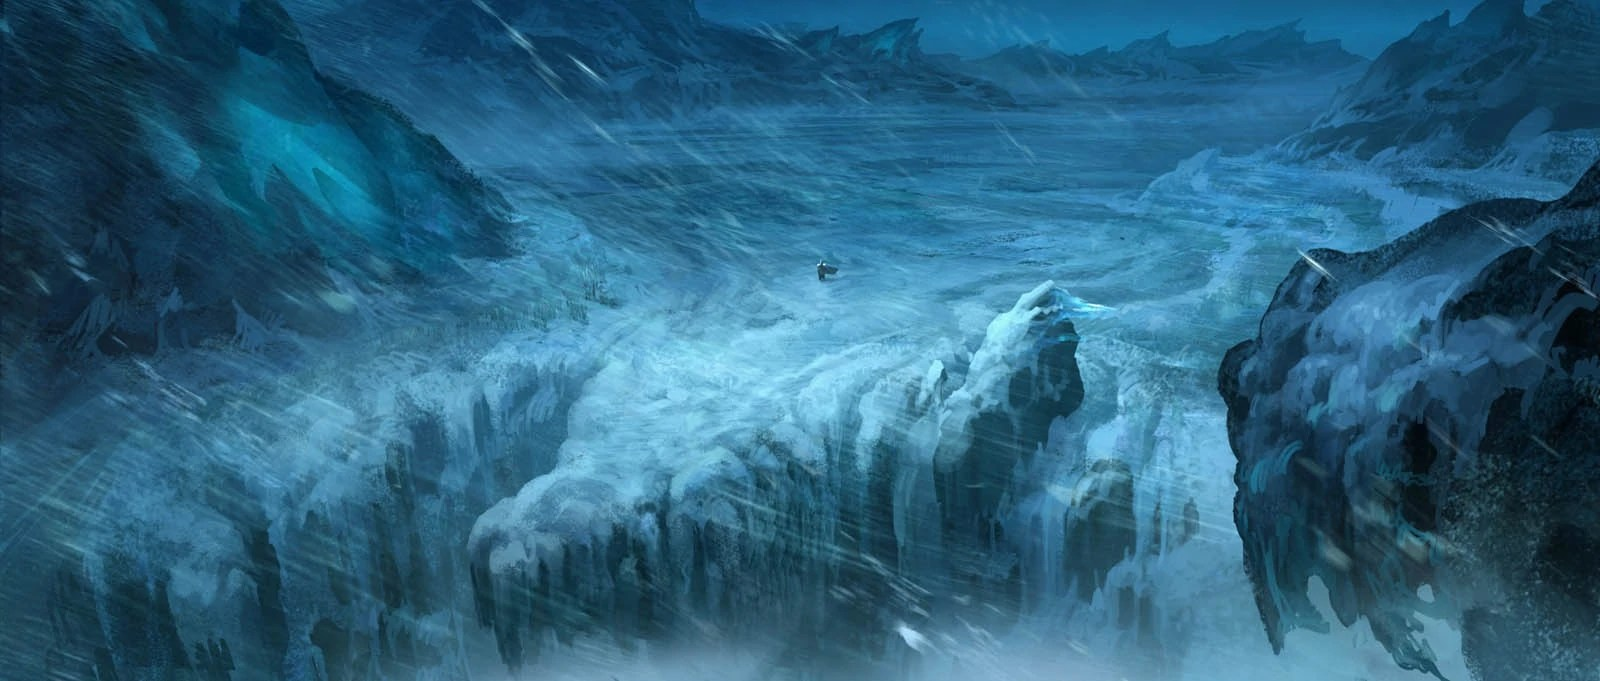 Fall Of The Lich King Wallpaper Northrend Expedition Mapzor Wiki Fandom Powered By Wikia